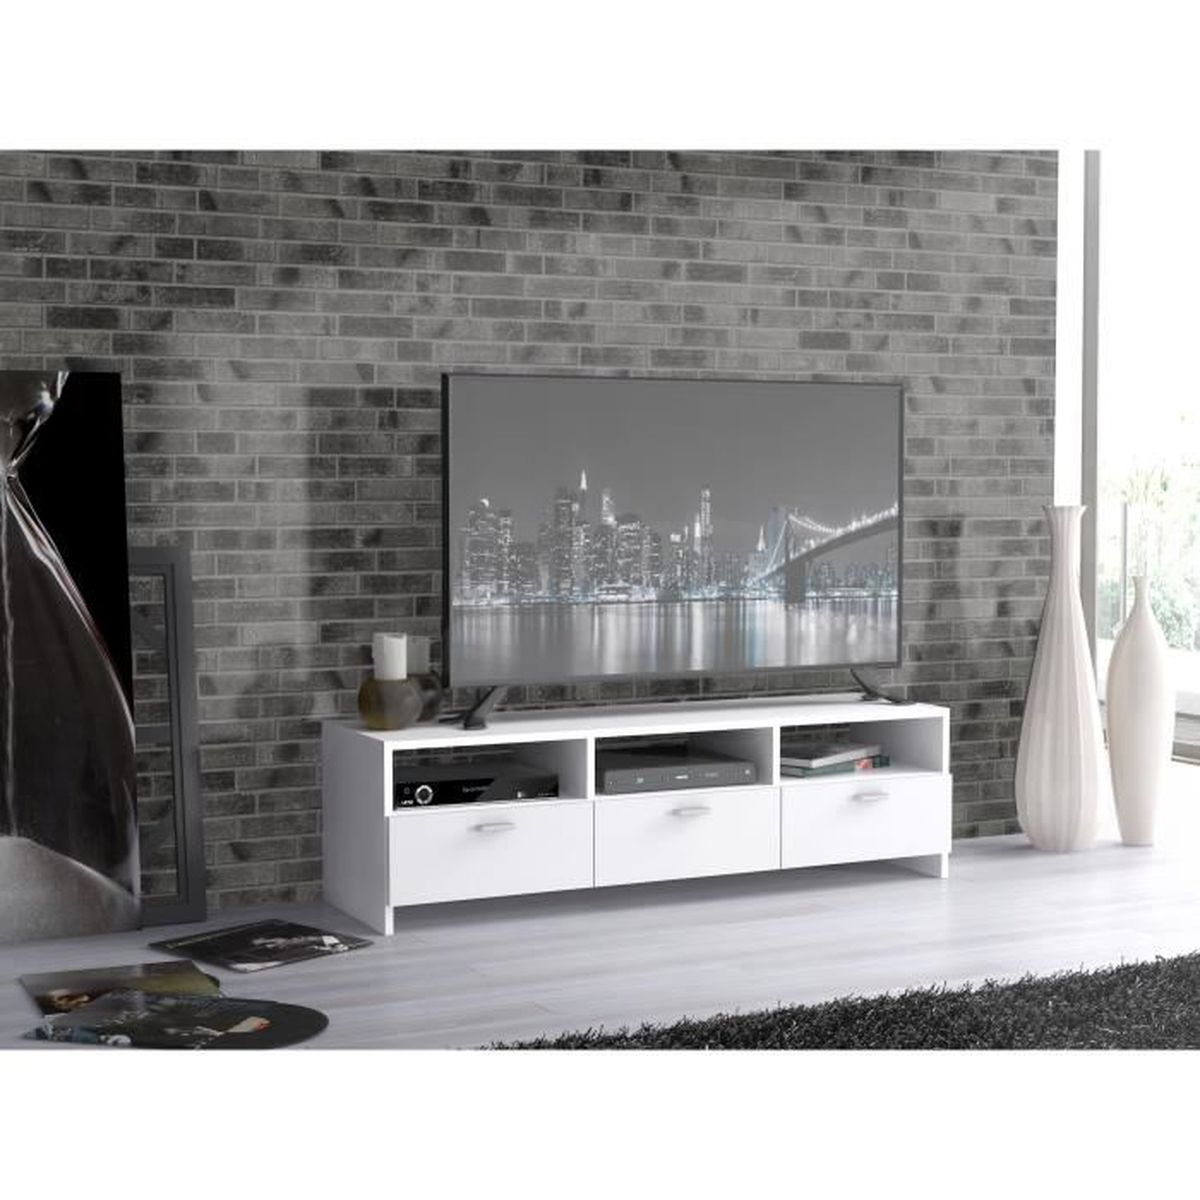 Finlandek meuble tv helppo contemporain blanc l 120cm for Meuble tv finlandek